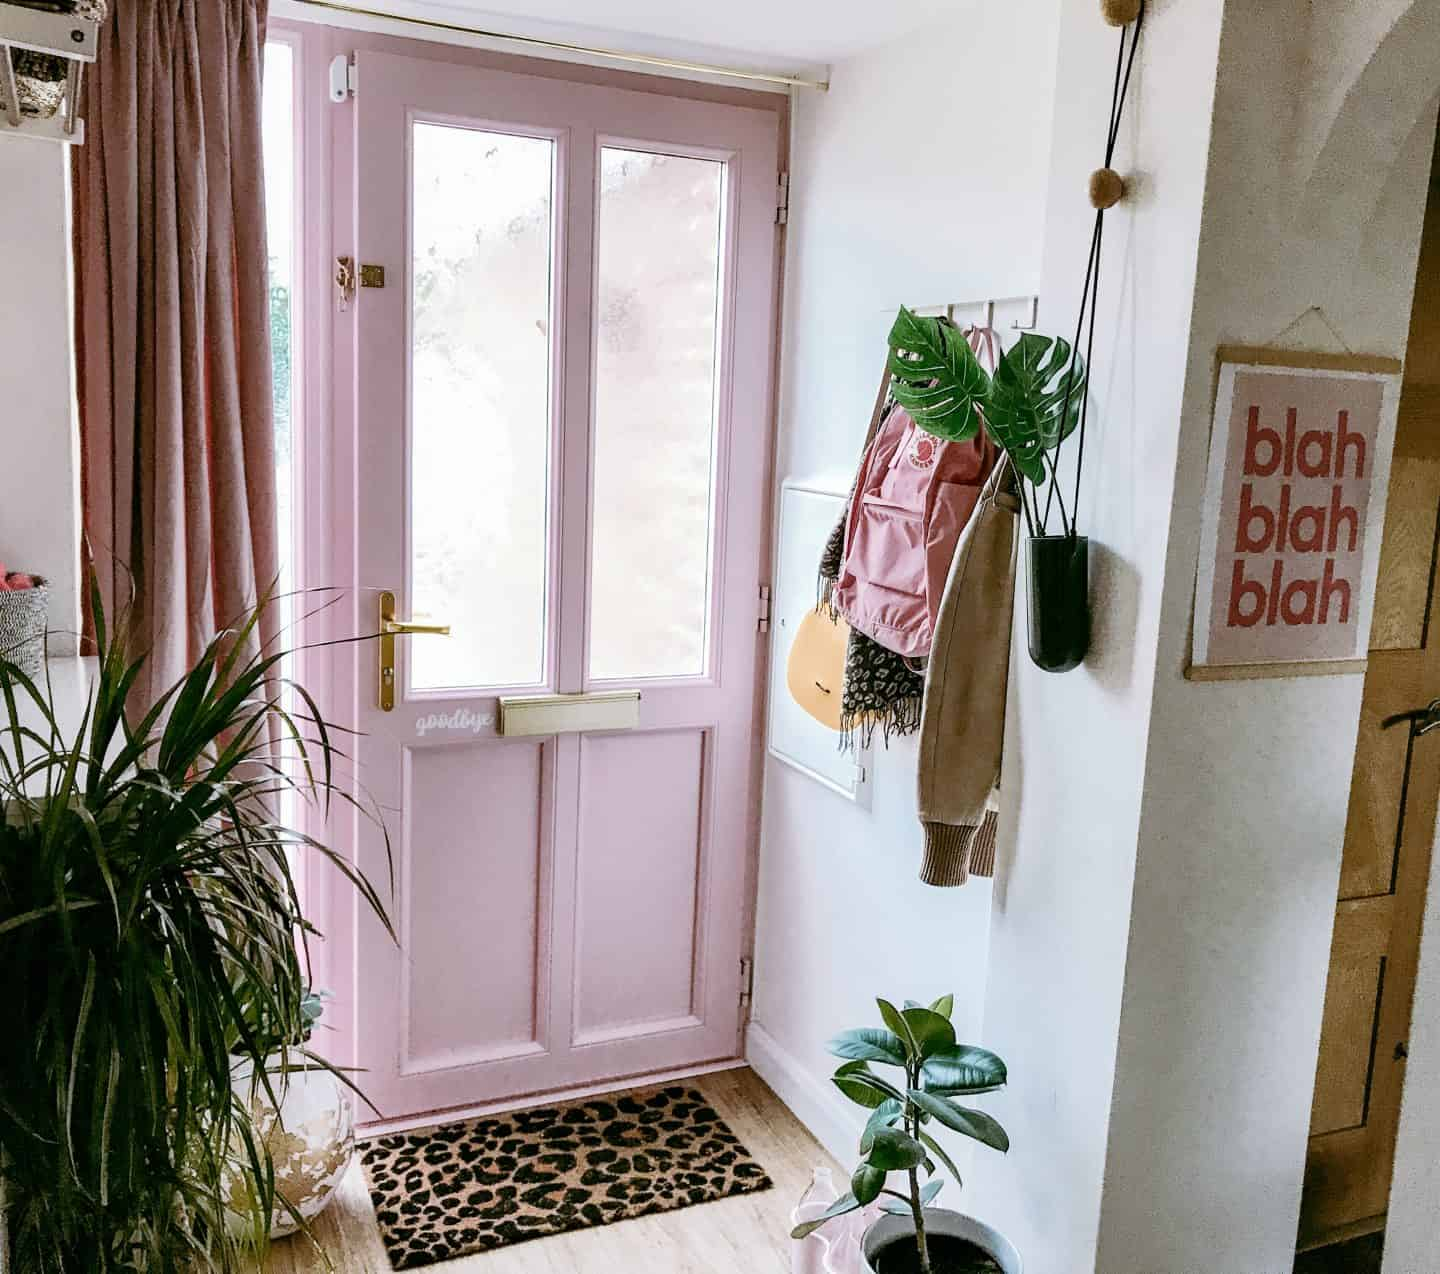 Hall way with pink door and velvet curtain to make it cosy